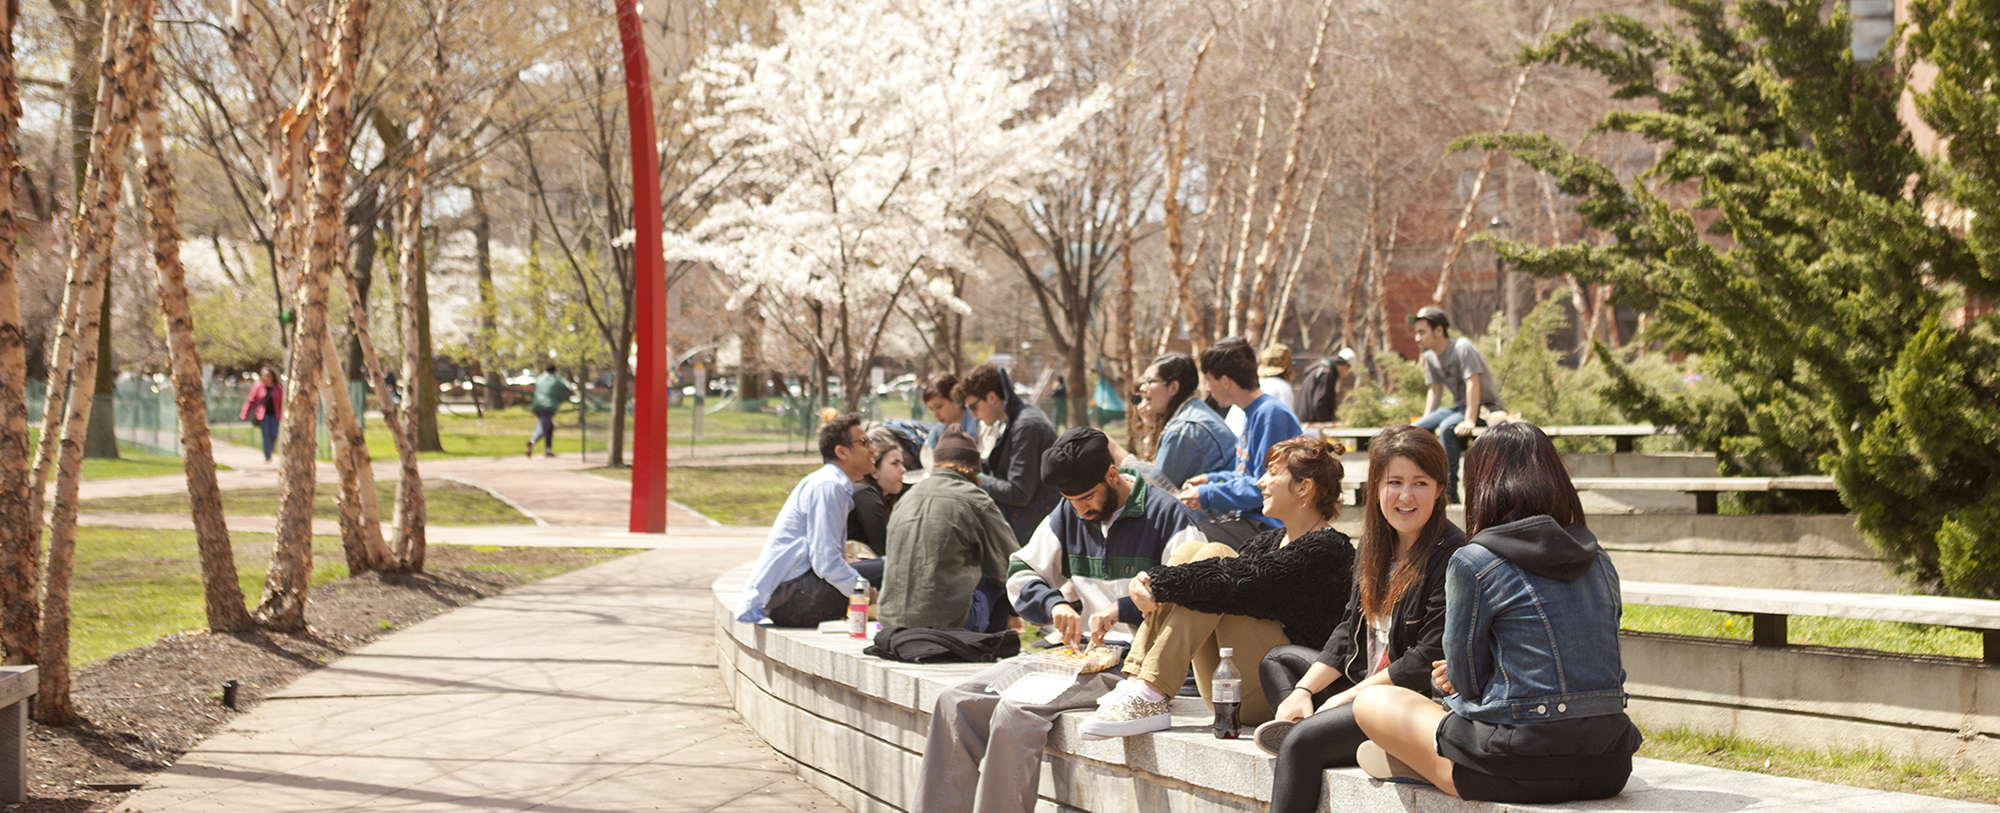 Students on Pratt campus